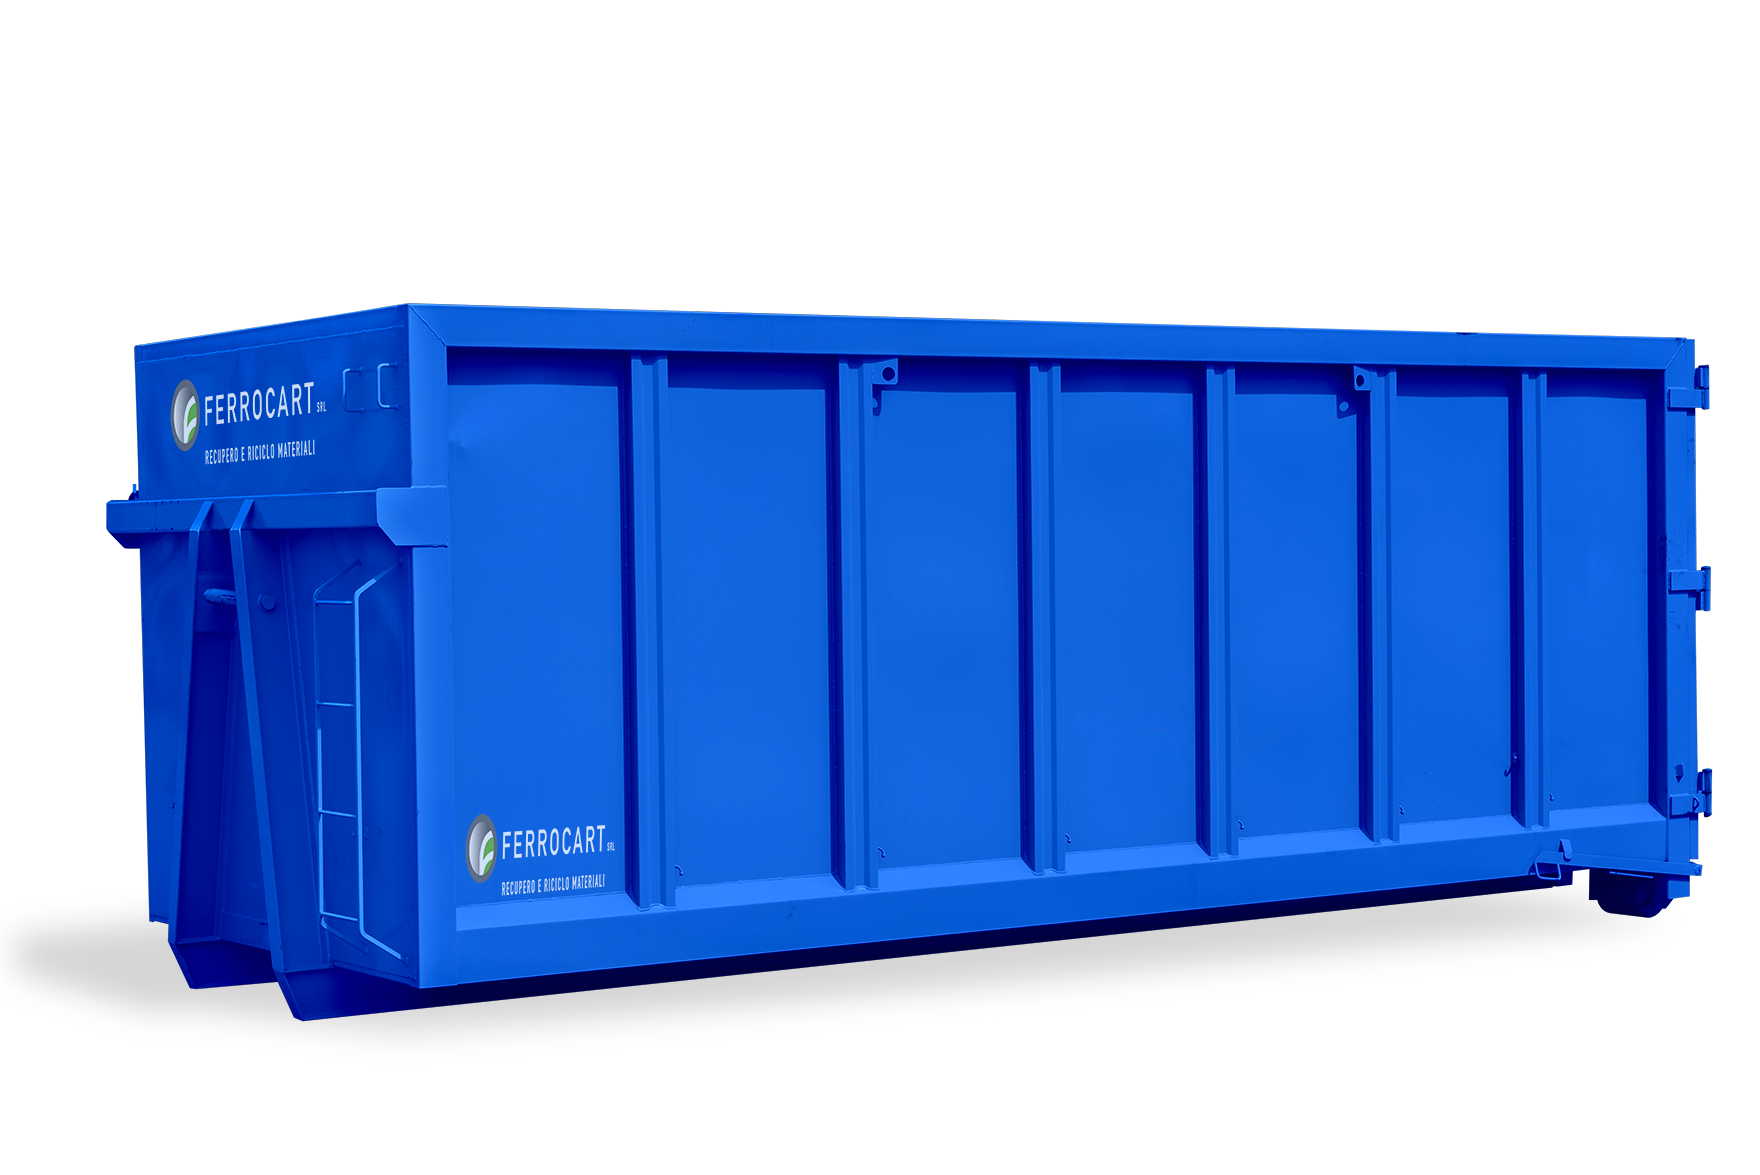 container ferrocart